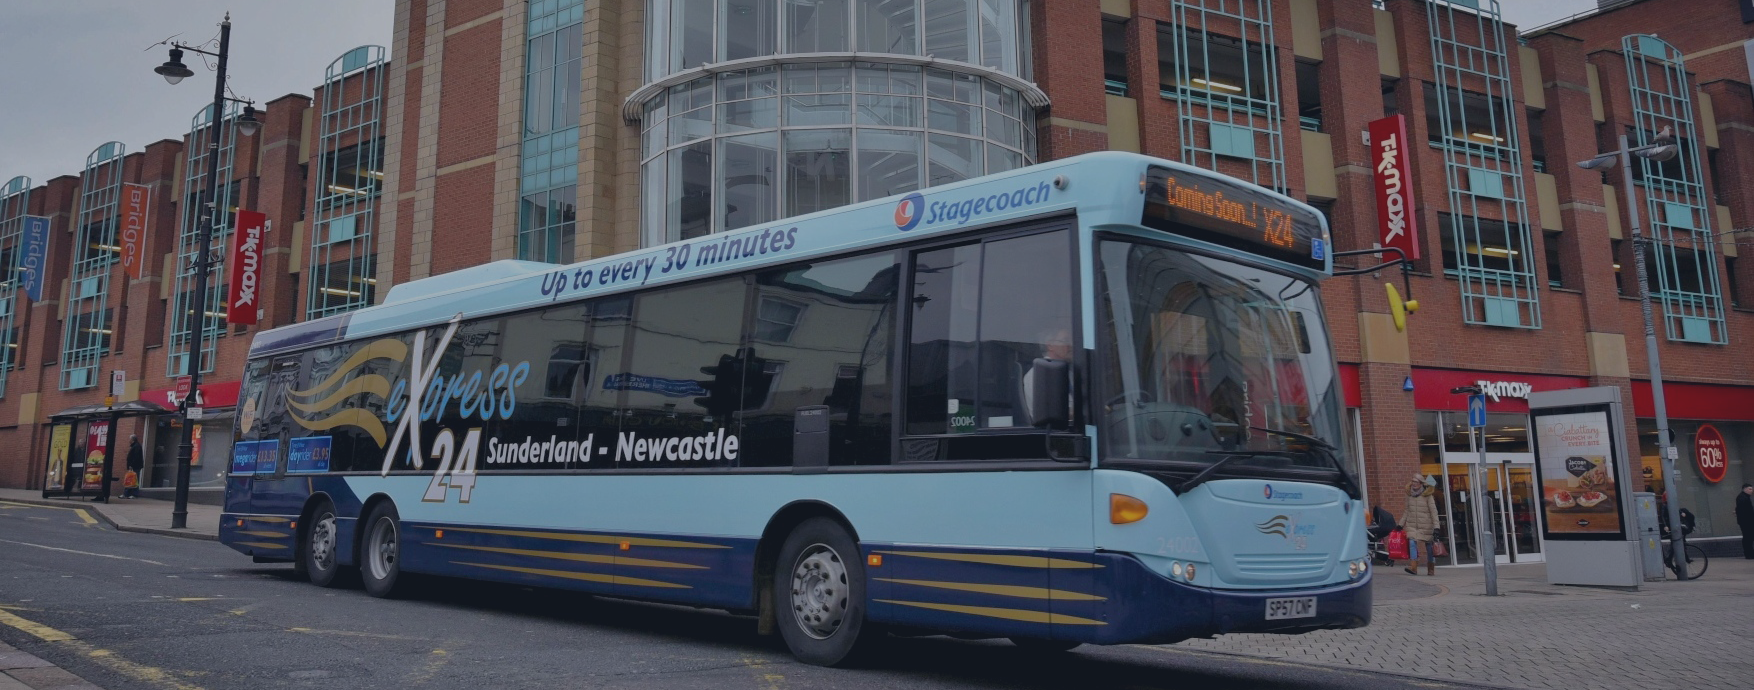 Their multi-channel solution resulted in 34% year-on-year passenger growth for Stagecoach